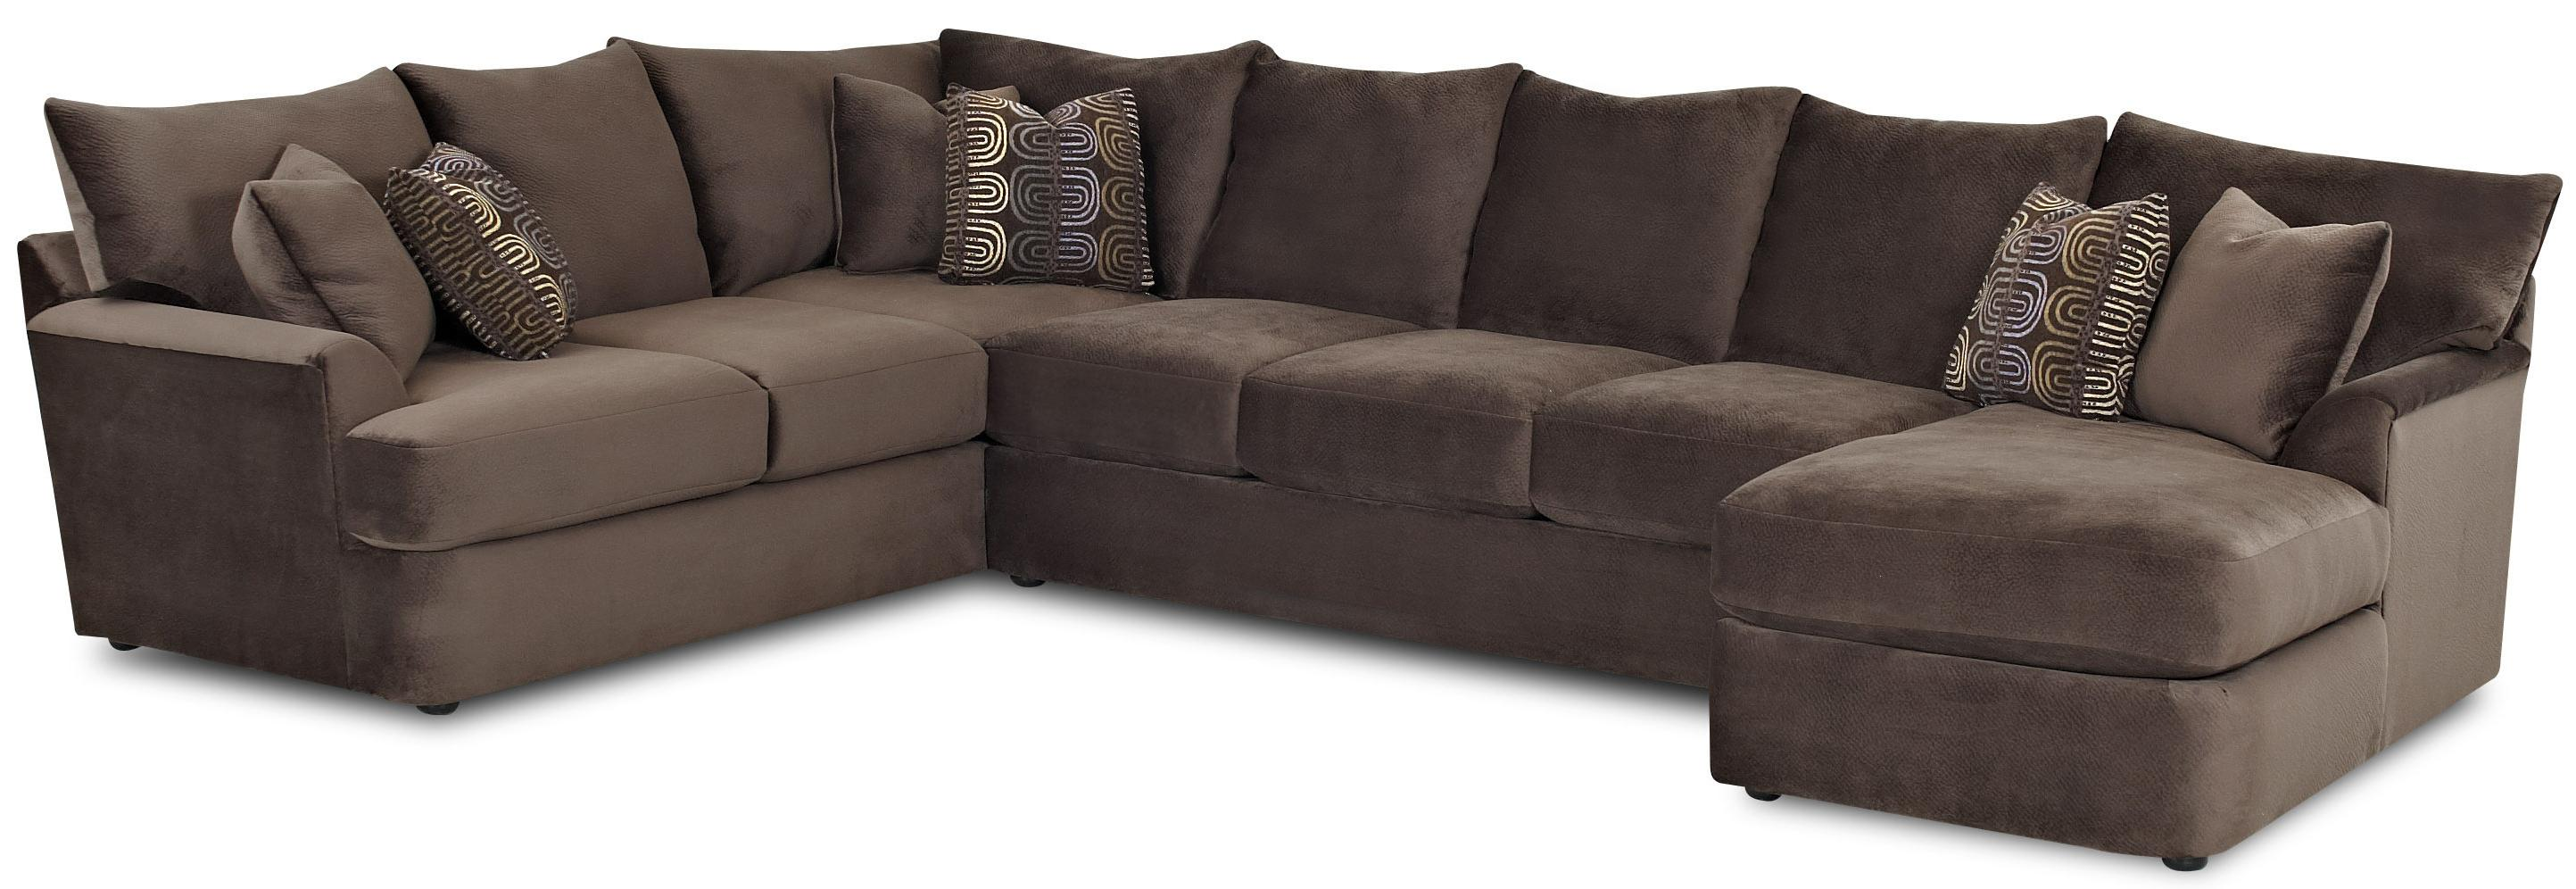 L-Shaped Sectional Sofa with Right Chaise  sc 1 st  Wolf Furniture : l shape sectional - Sectionals, Sofas & Couches